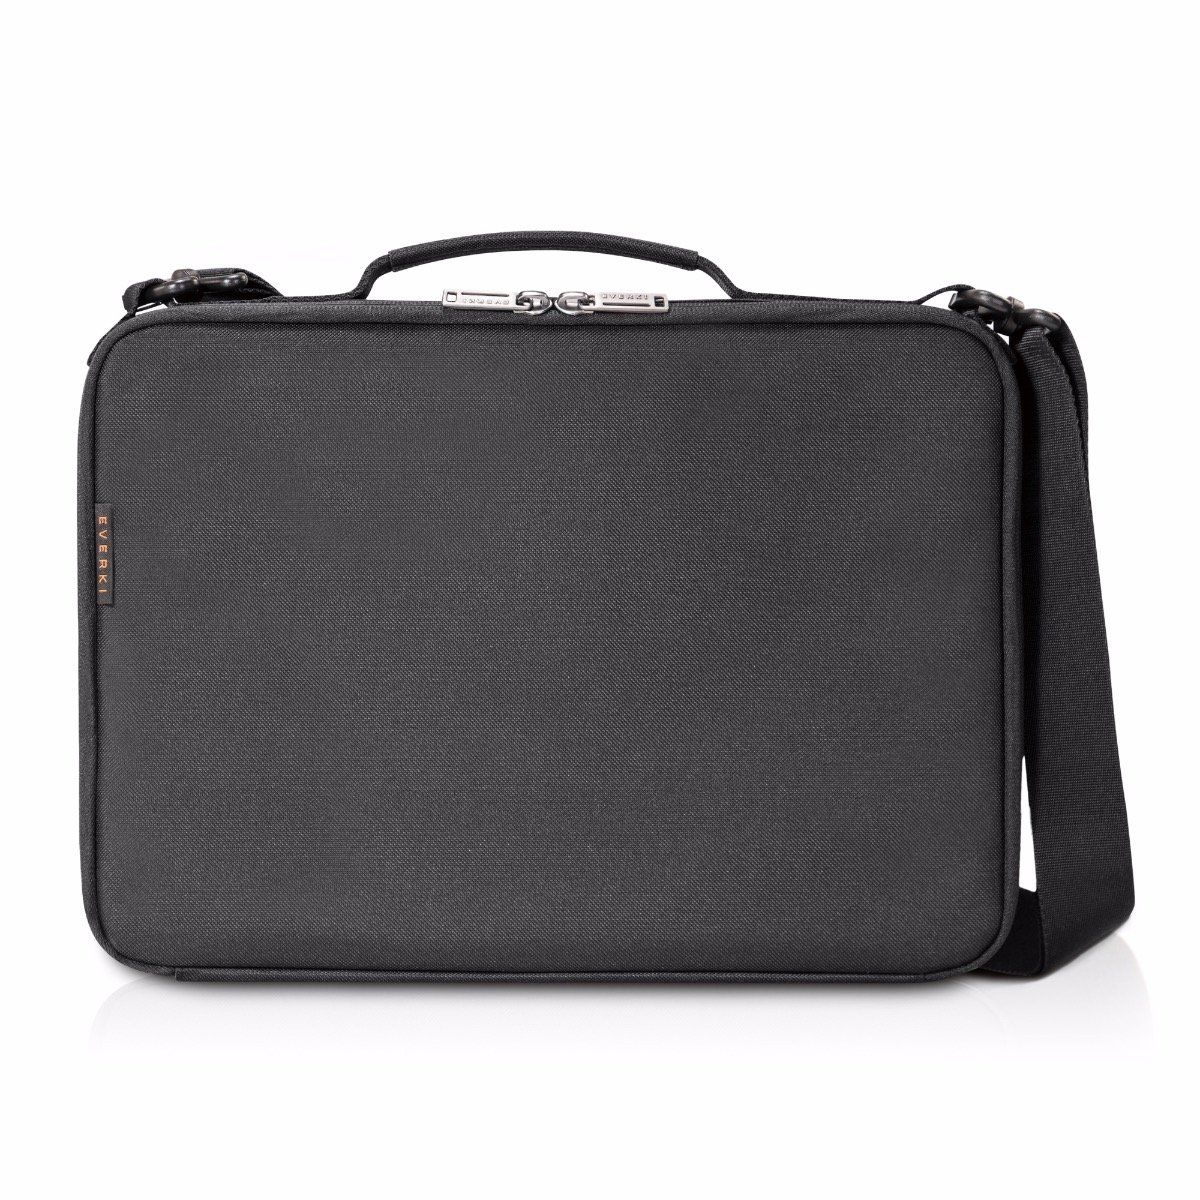 Core Hard Shell Case for Laptops, up to 13.3-Inch